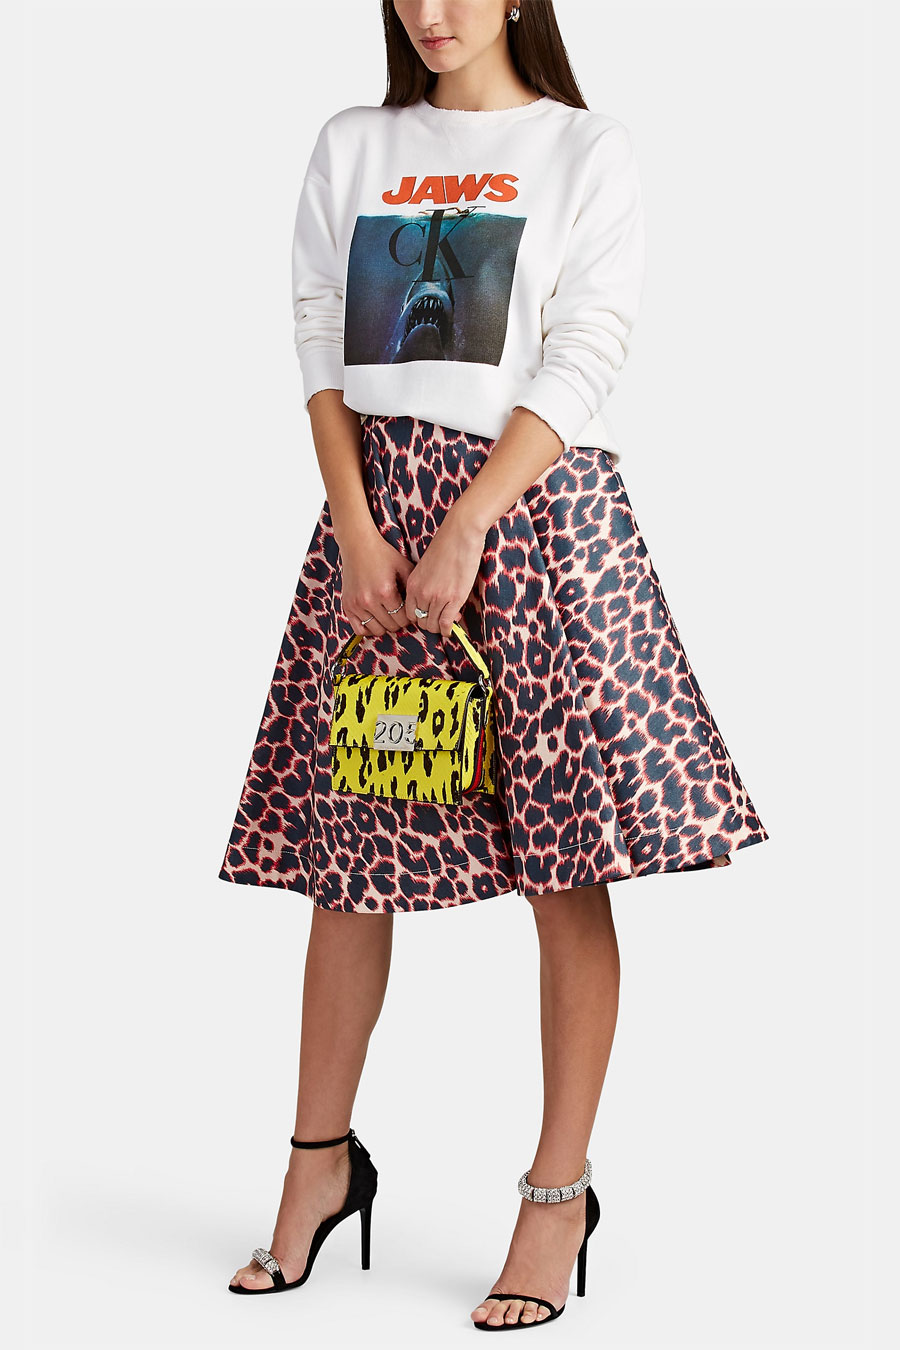 CALVIN KLEIN 205W39NYC Leopard Print Cotton Full Skirt